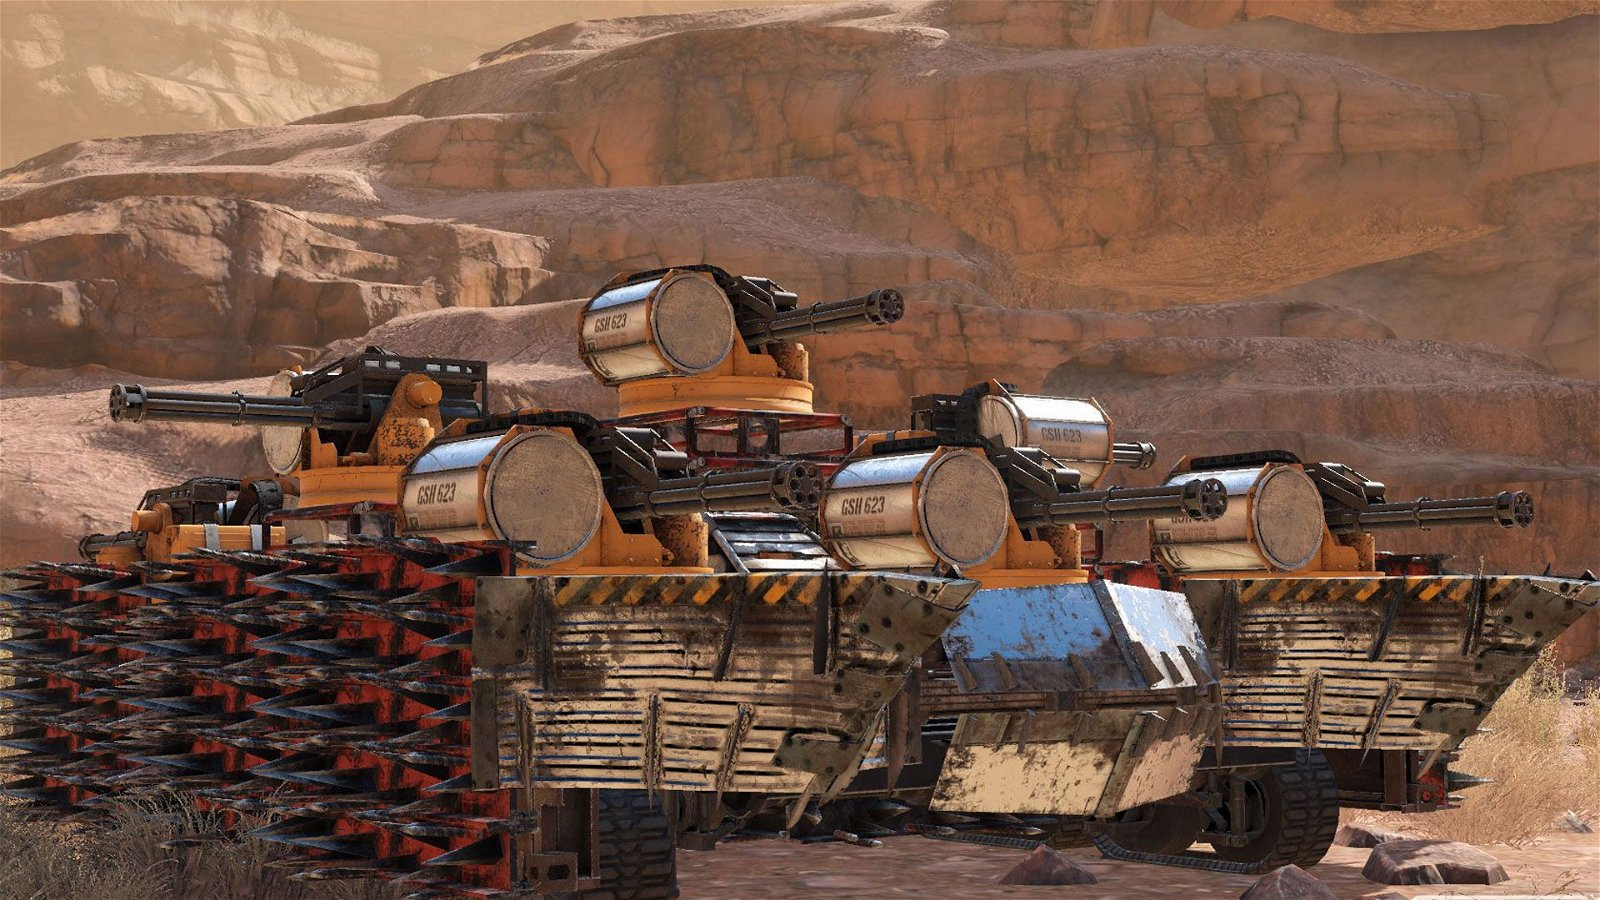 Crossout Preview - Promising Vehicular Combat 4